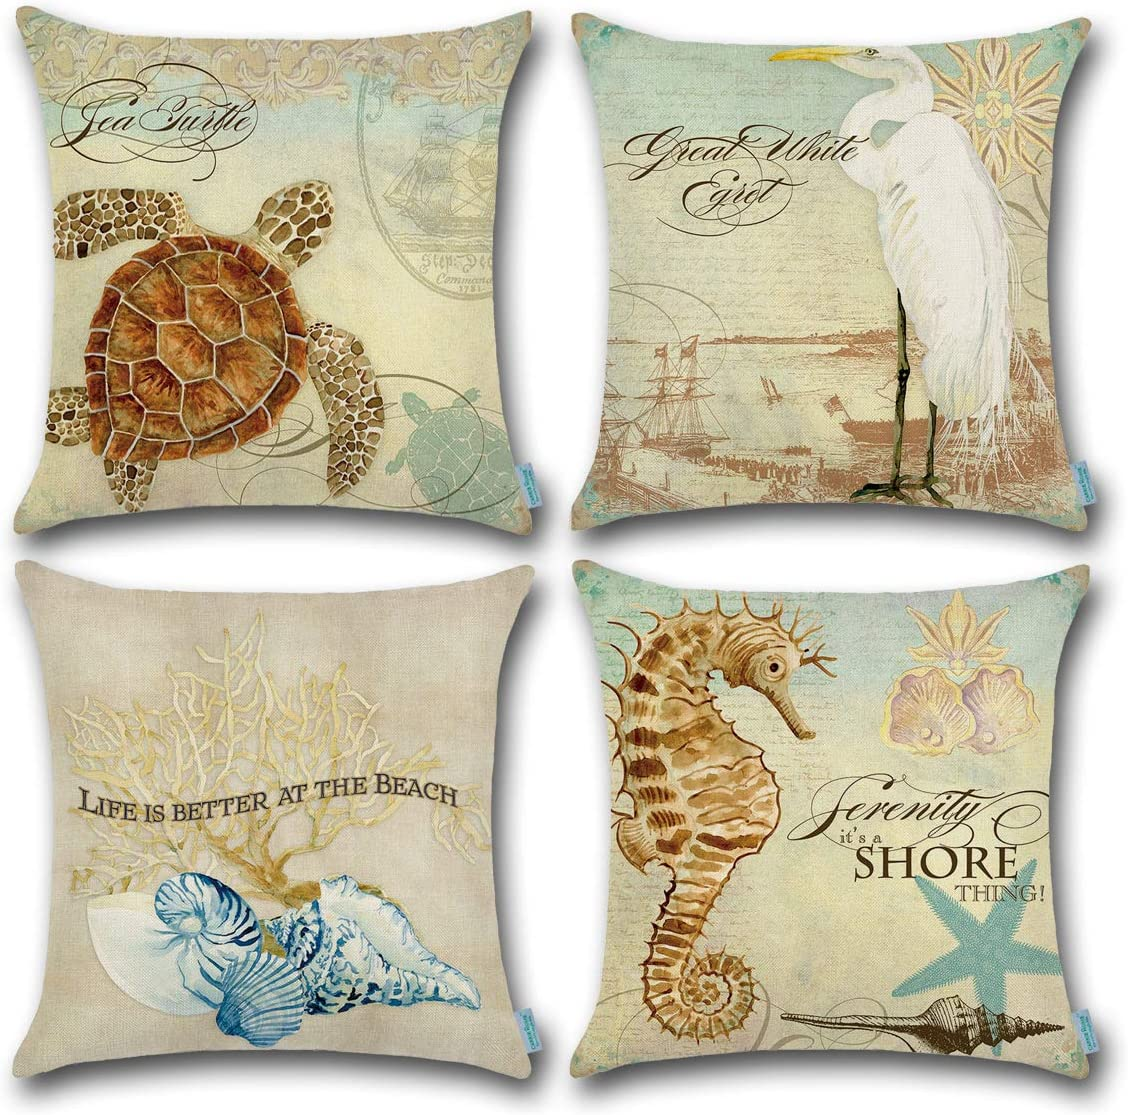 CARRIE HOME Beach Seashell Decor Golden Sea Turtle Seahorse/Blue Conch/White Waterfowl Decorative Throw Pillow Covers for Mediterranean Style, Set of 4